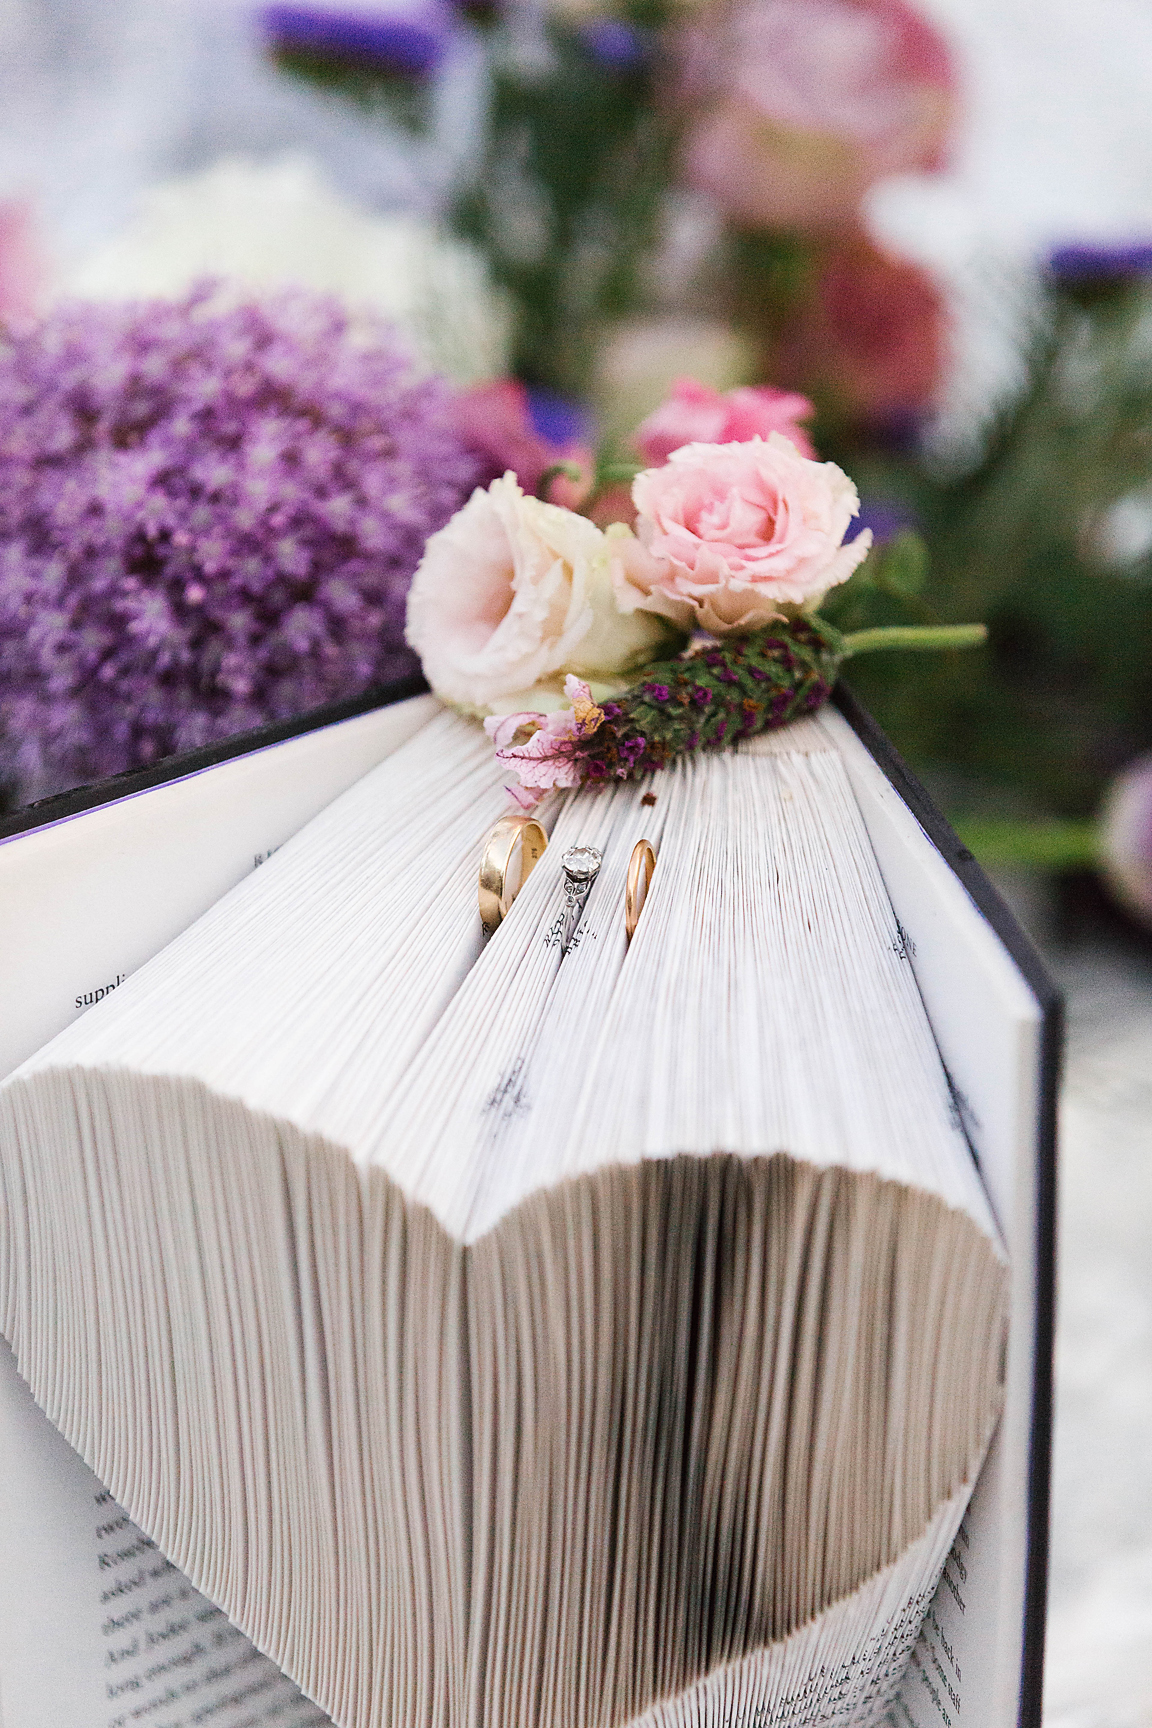 Book art by Myaink Words. Photography by Poppy & Sage Photography.